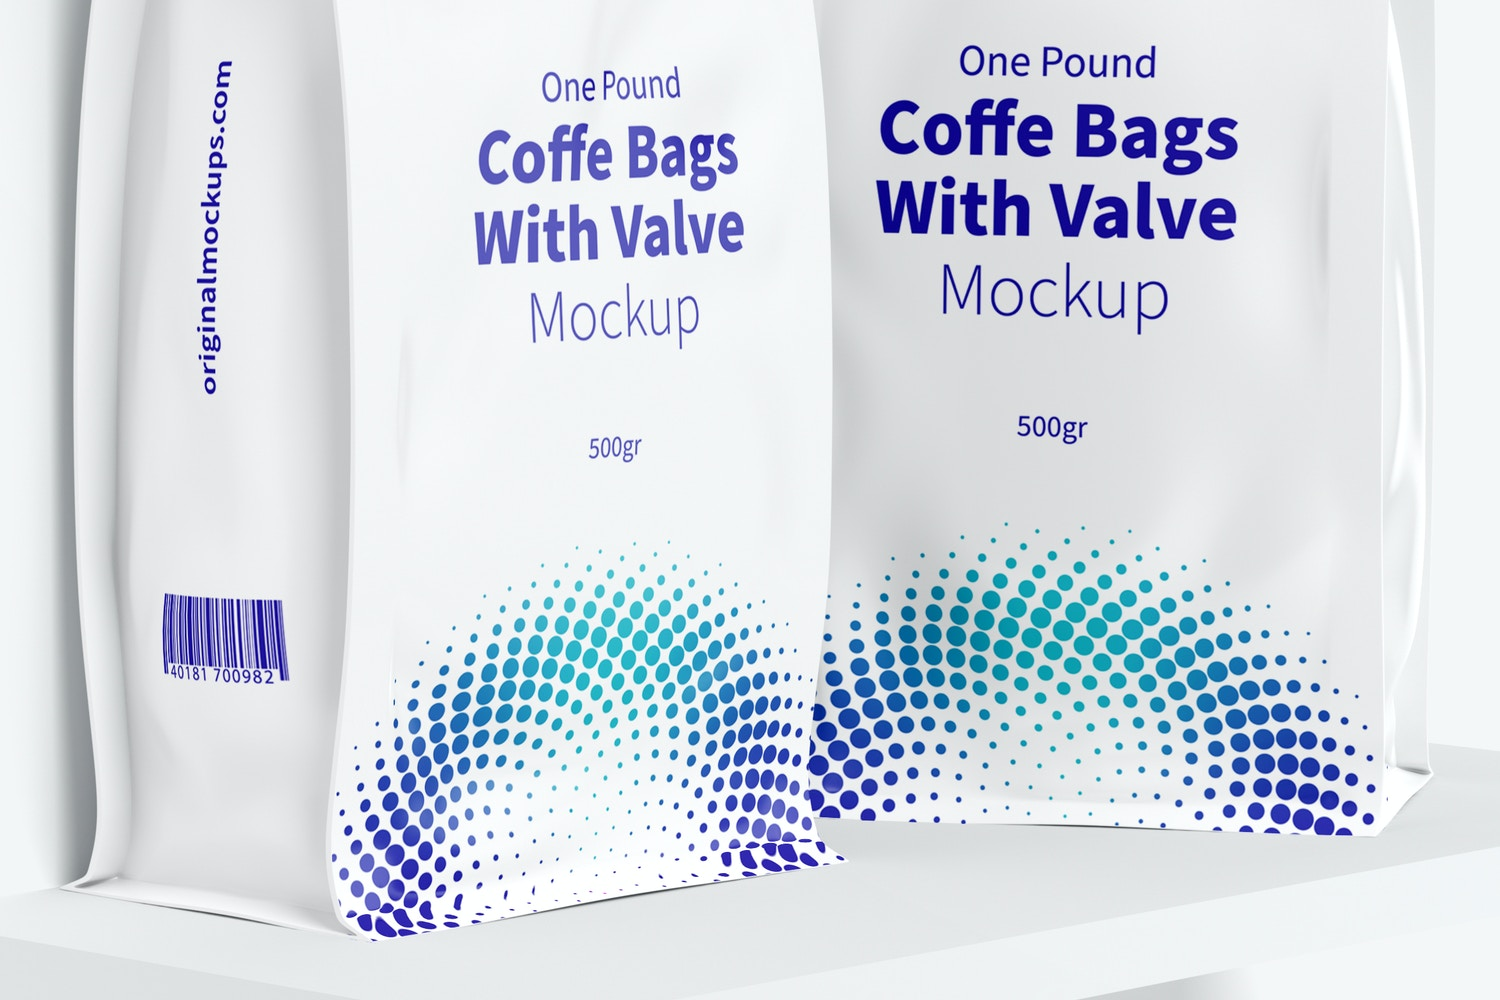 One Pound Coffee Bags with Valve Mockup, On Shelf